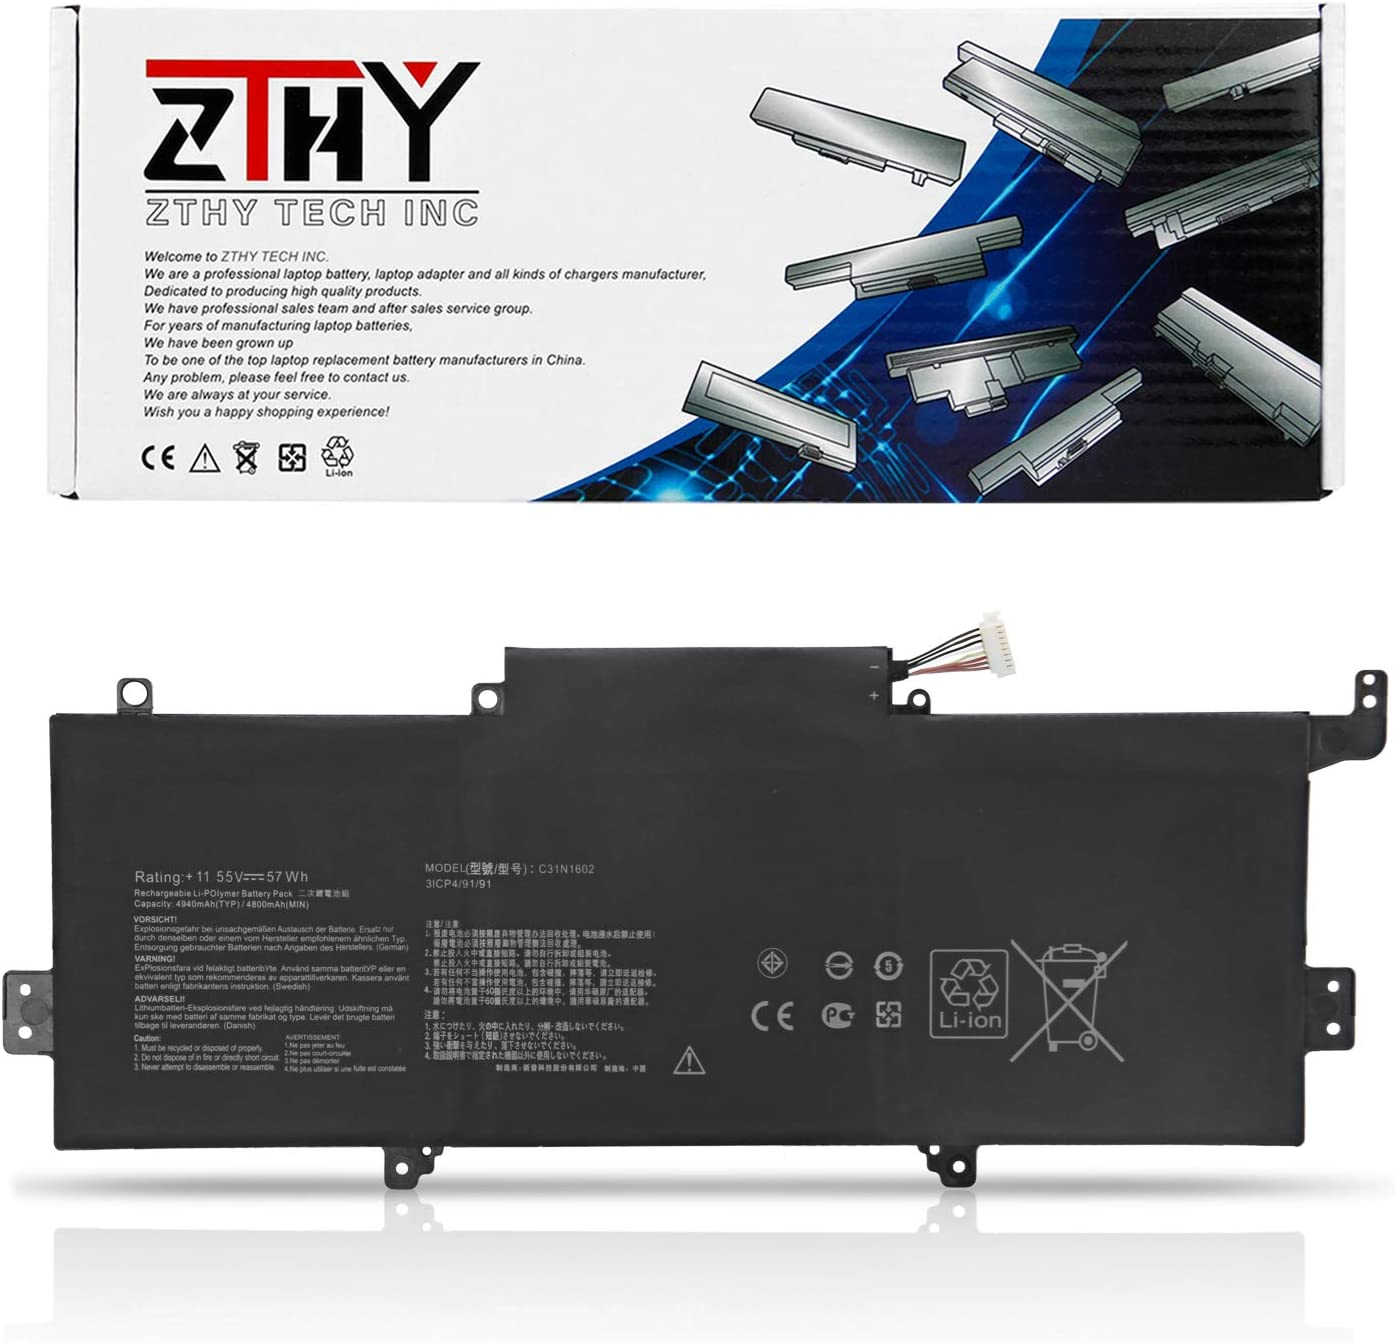 ZTHY C31N1602 Laptop Battery Replacement for Asus ZenBook U3000U UX330 UX330U UX330UA UX330UAK UX330UA-1A UX330UA-1B UX330UA-1C UX330UA-FB018R FB161T Series C31N16O2 0B200-02090000 11.55V 57Wh